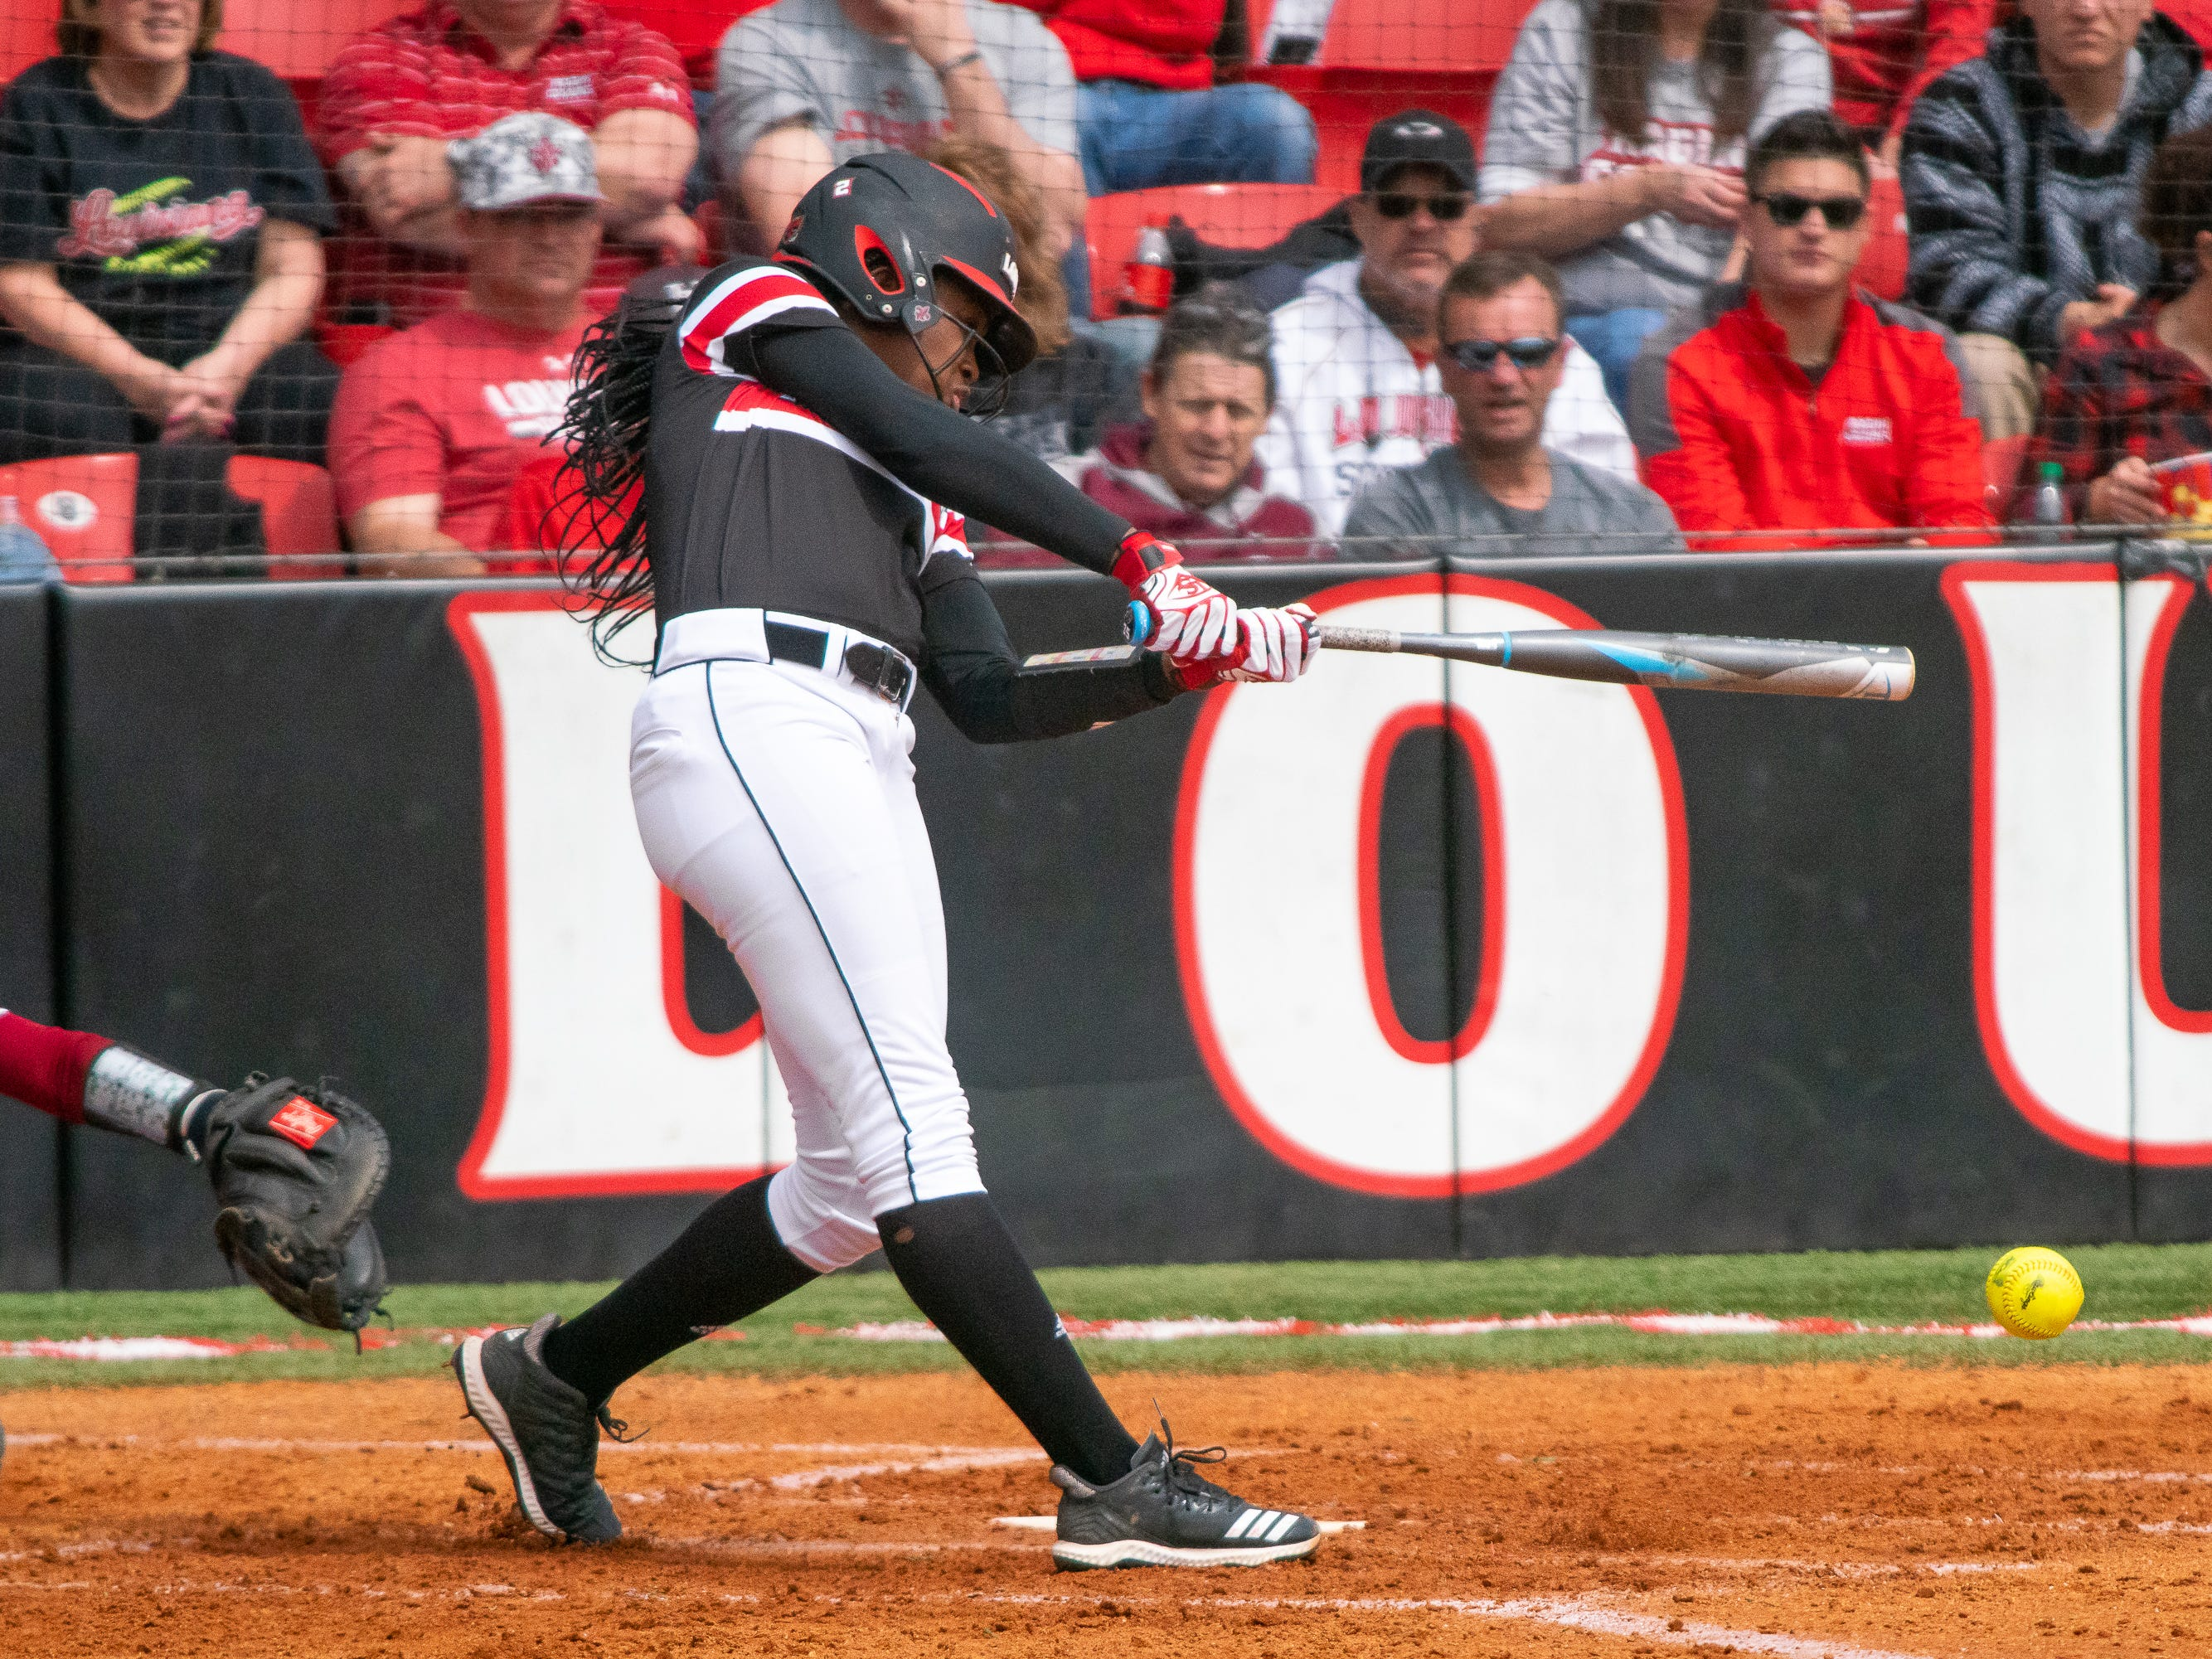 UL's Raina O'Neal hits a grounder as the Ragin' Cajuns take on the Troy Trojans at Yvette Girouard Field at Lamson Park on Saturday, March 16, 2019.